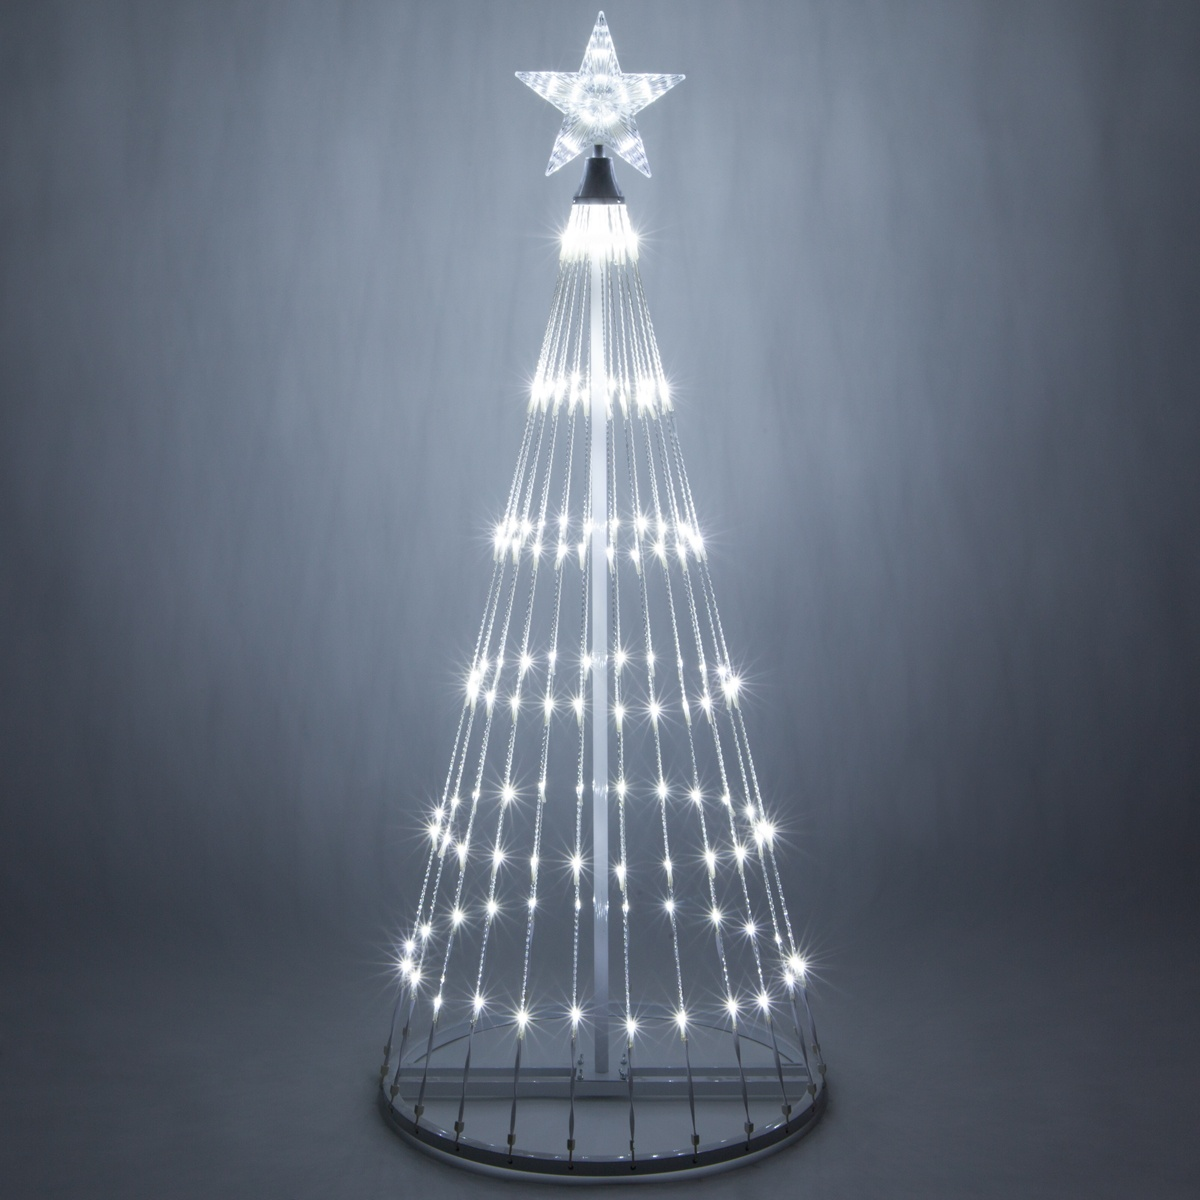 Cool white led animated outdoor lightshow tree - Large bulb exterior christmas lights ...